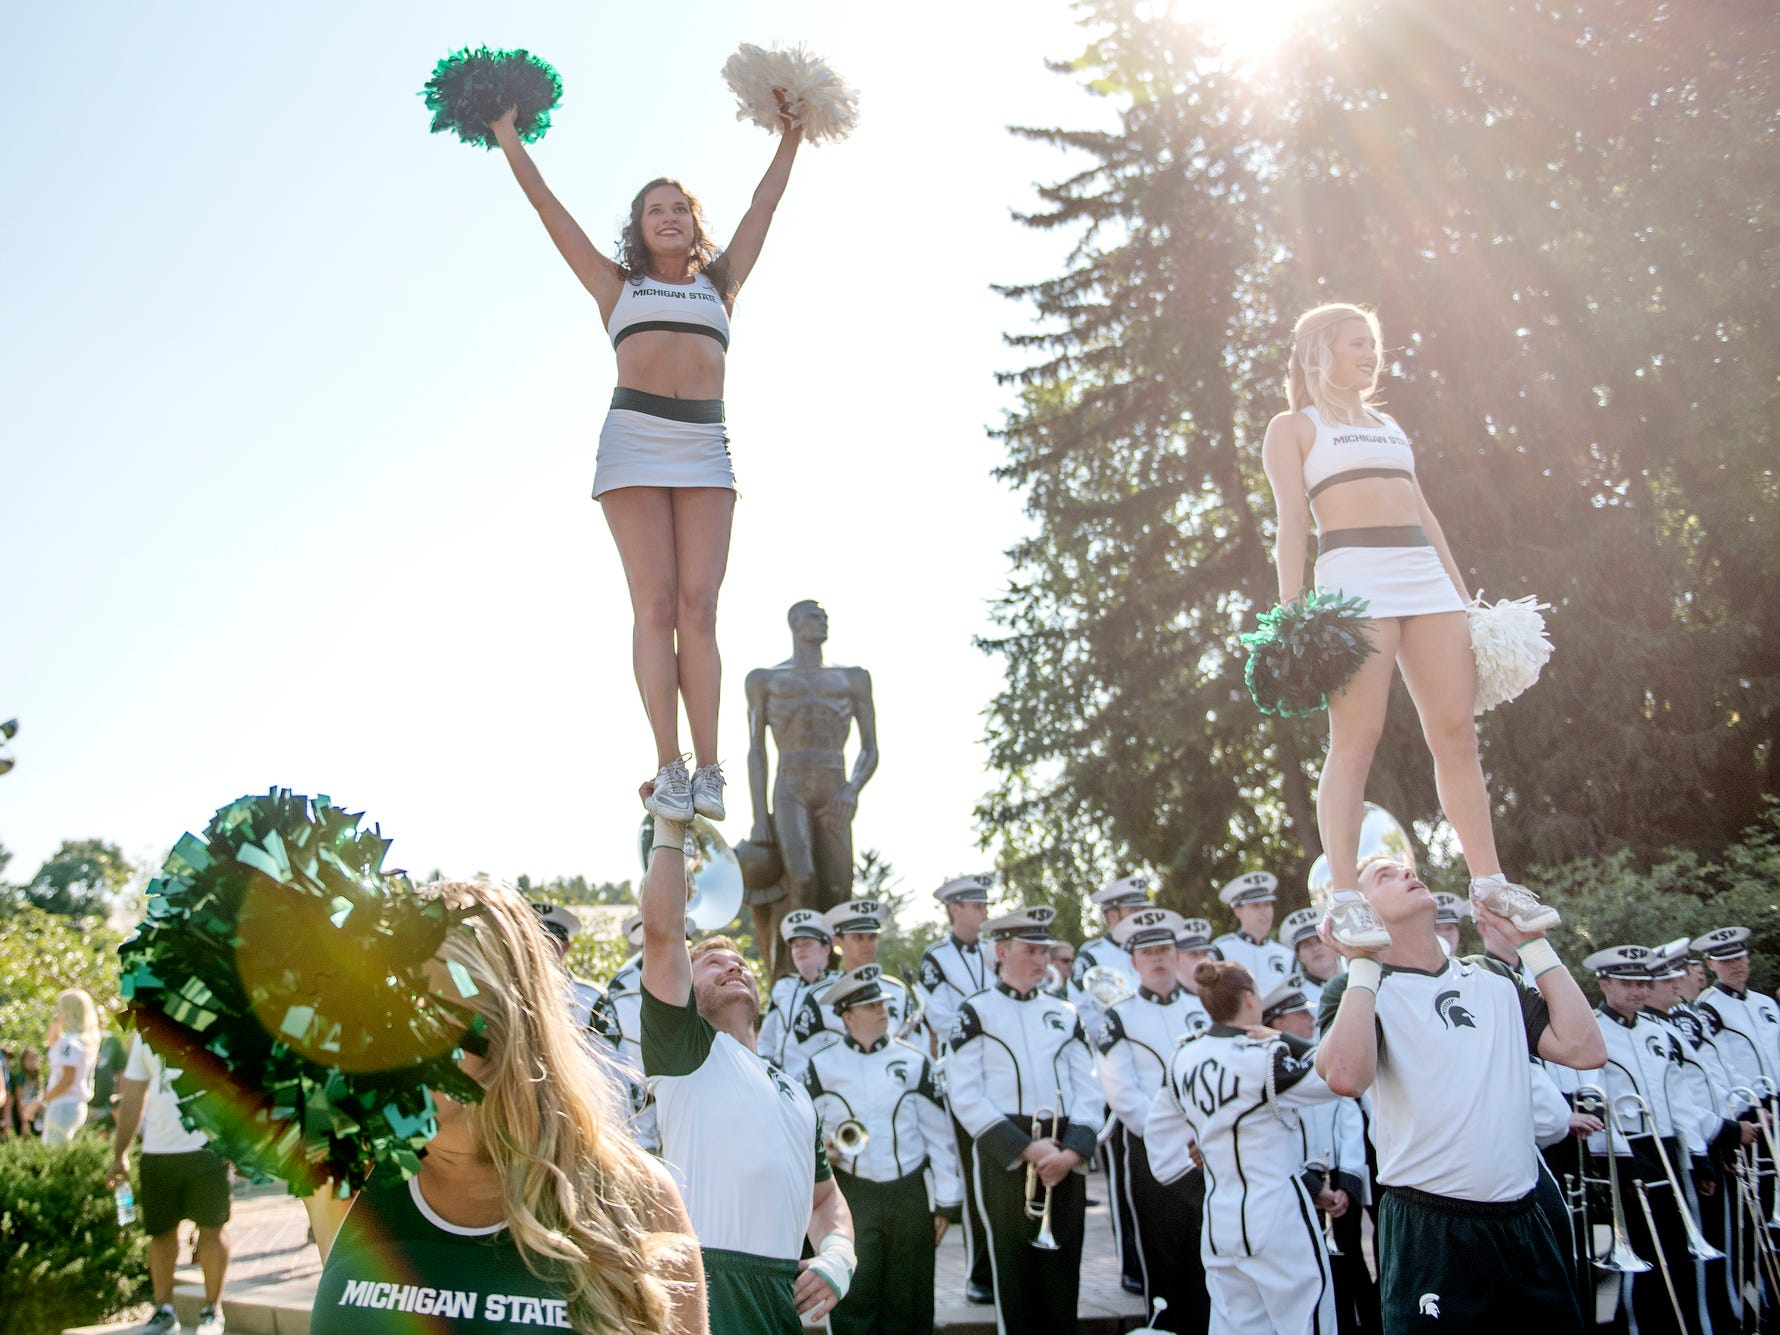 Michigan State University cheerleaders perform for fans at the Sparty statue before the Spartans' game against Utah State on Friday, Aug. 31, 2018, in East Lansing.